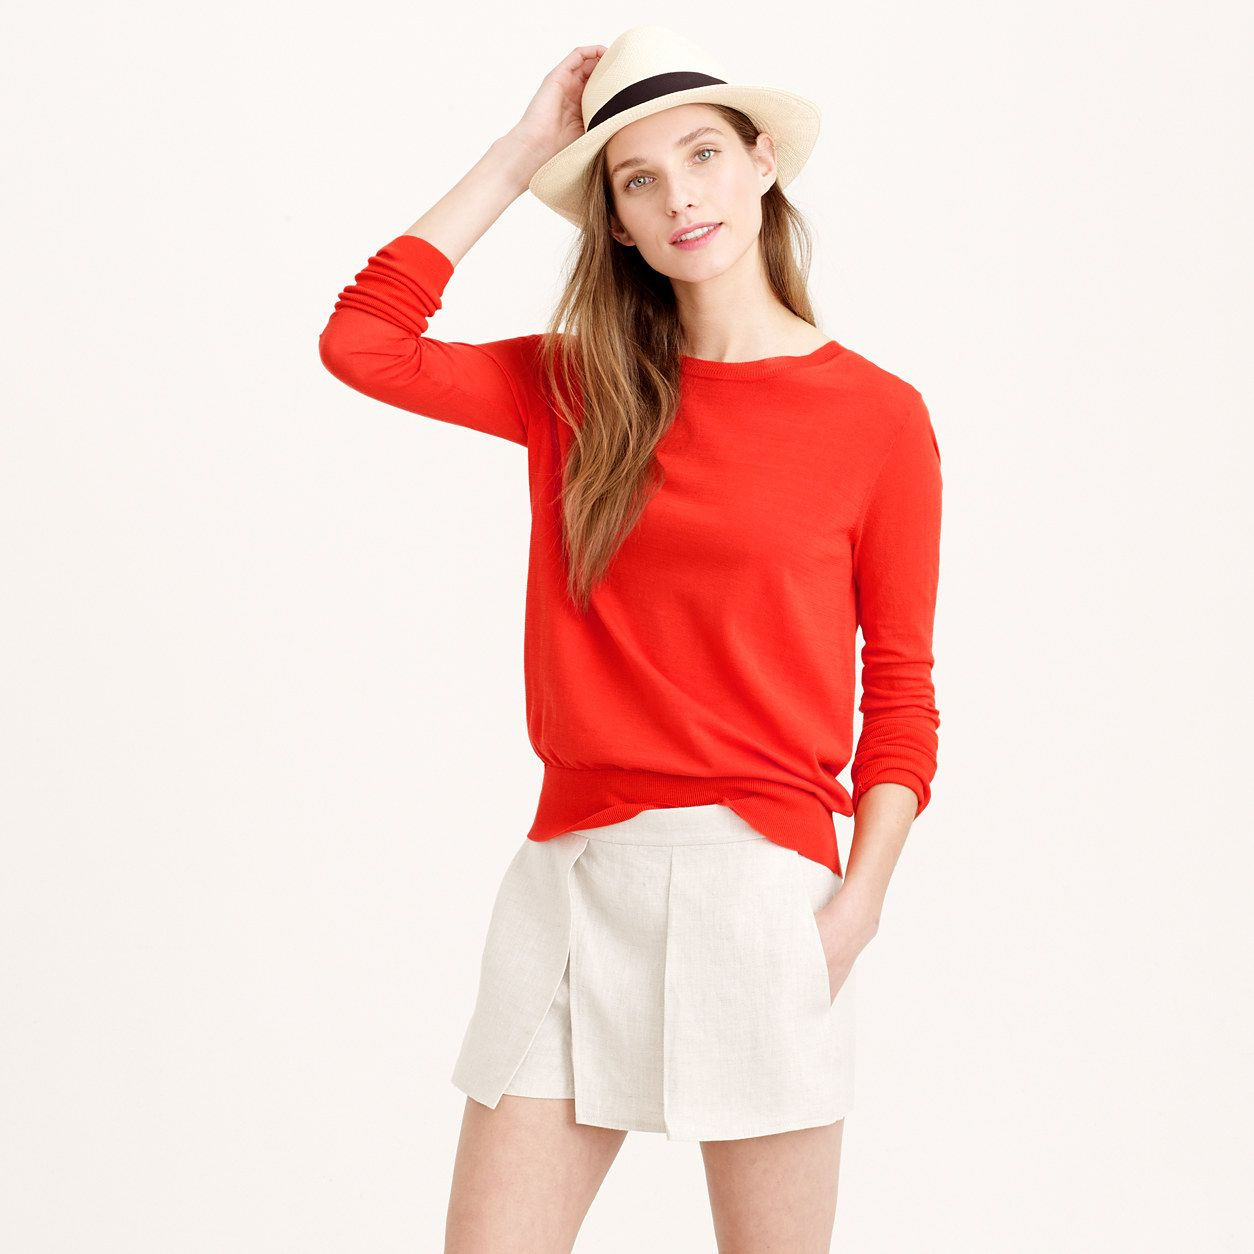 Summerweight cotton sweater : Pullovers | J.Crew | Wear to work ...